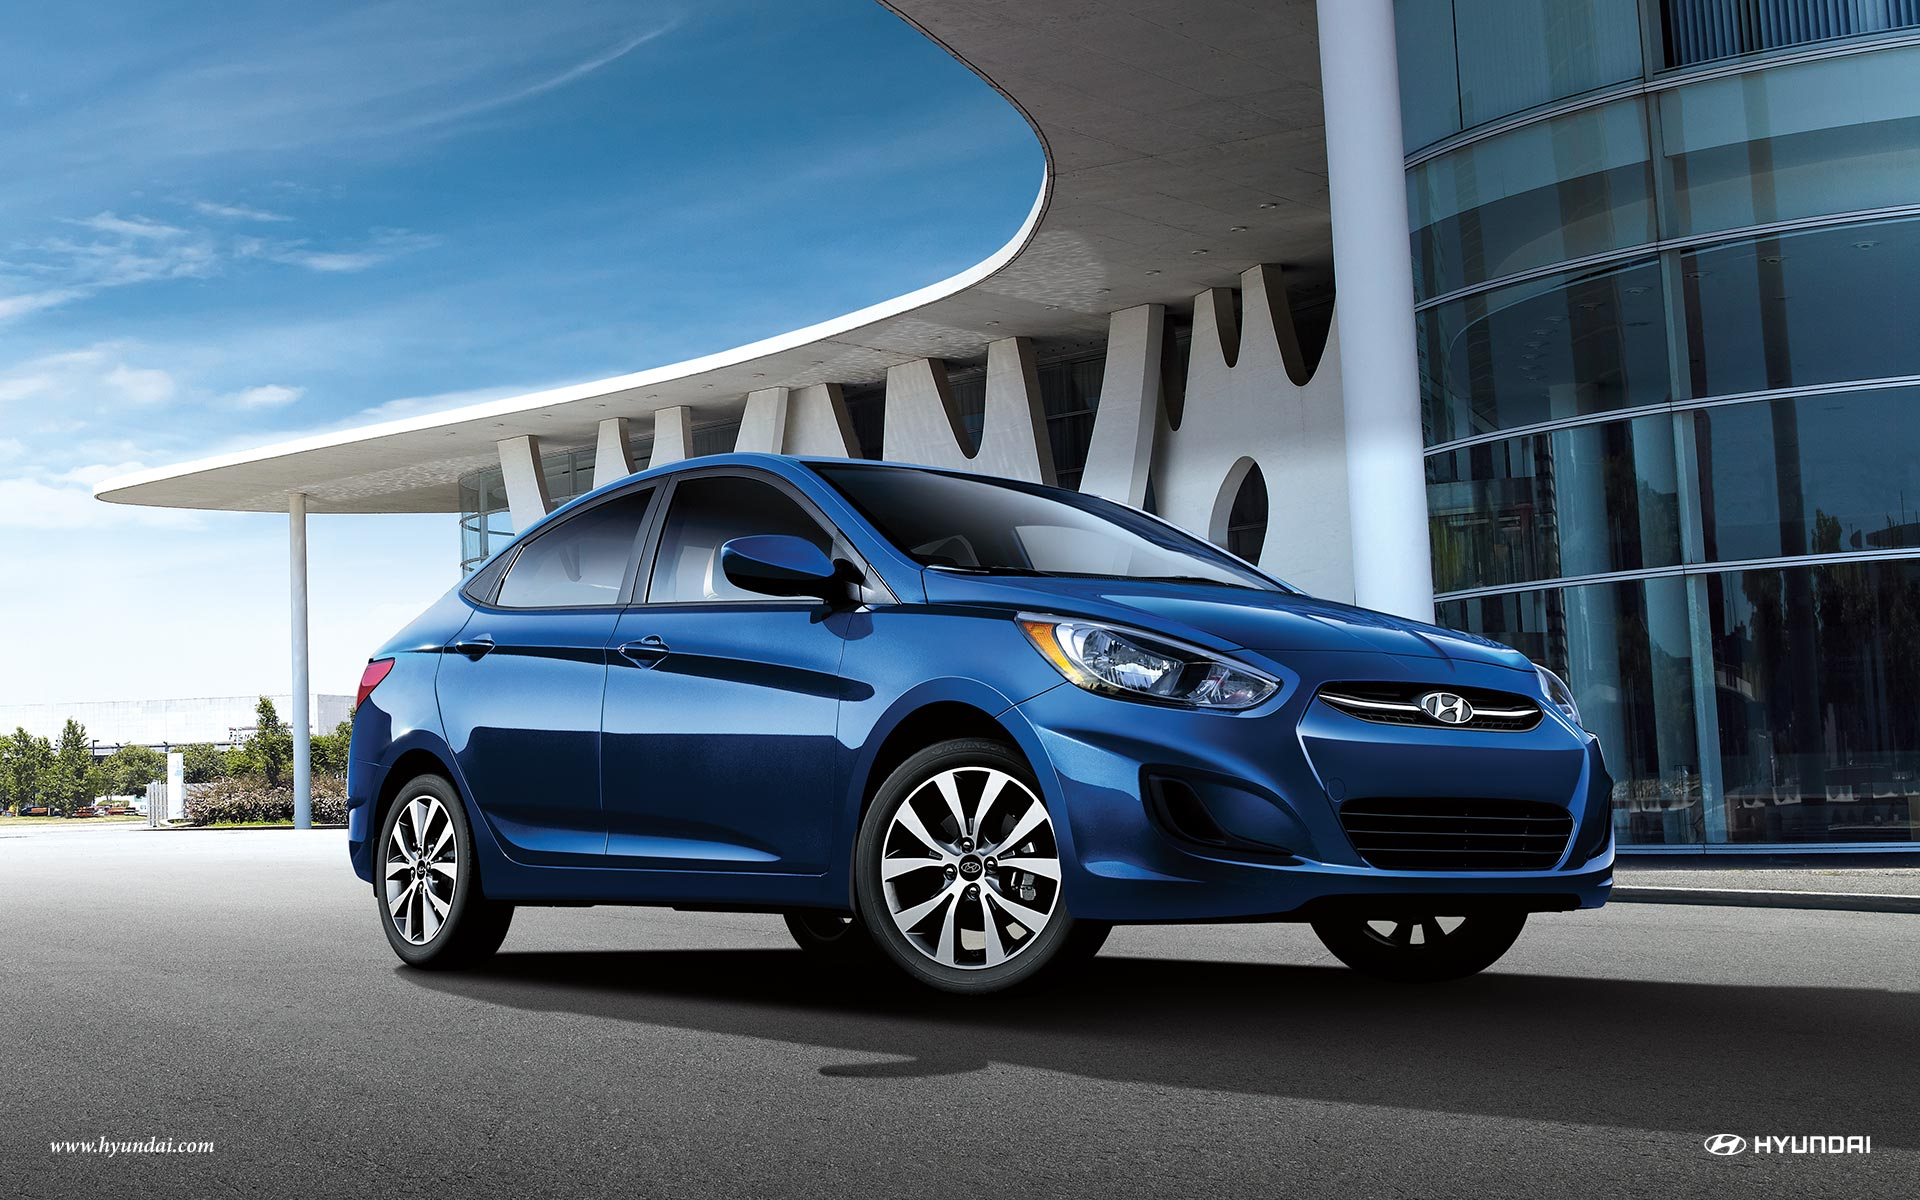 How The Hyundai Accent Gets Best Fuel Economy From Active Eco 2012 Elantra Filter Mode Of New Bern Blog